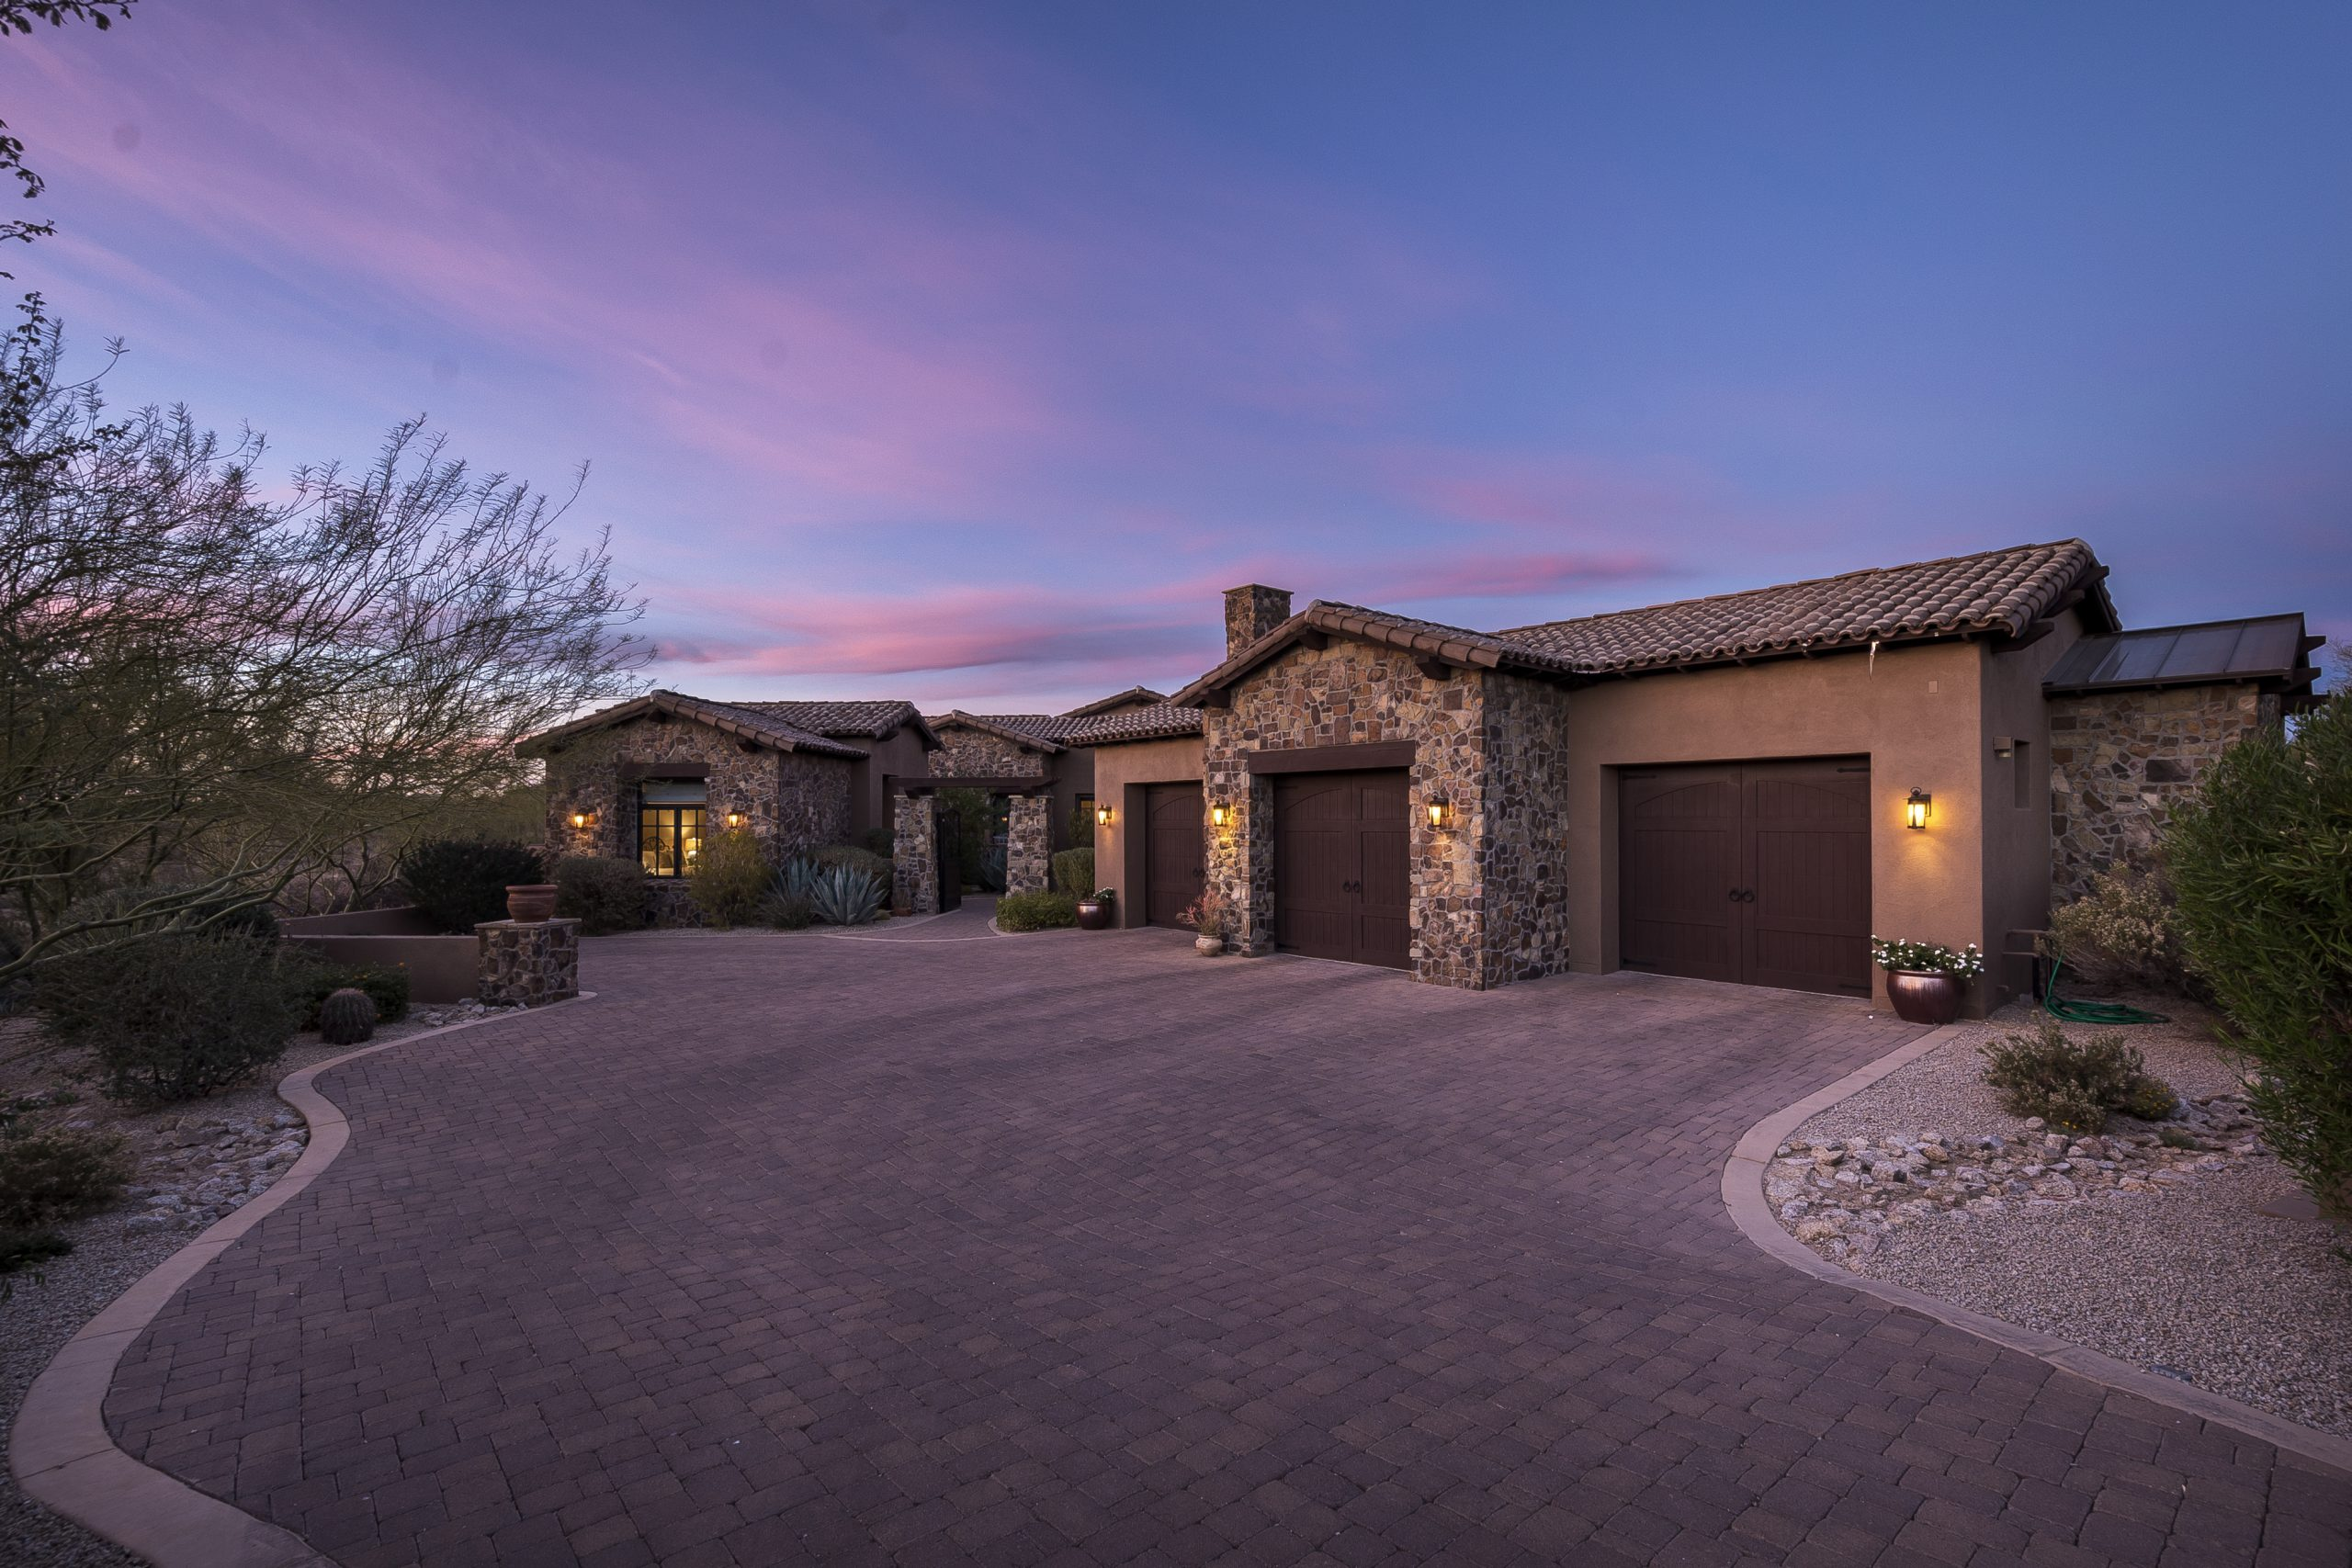 Whisper Rock Real Estate - Homes for sale